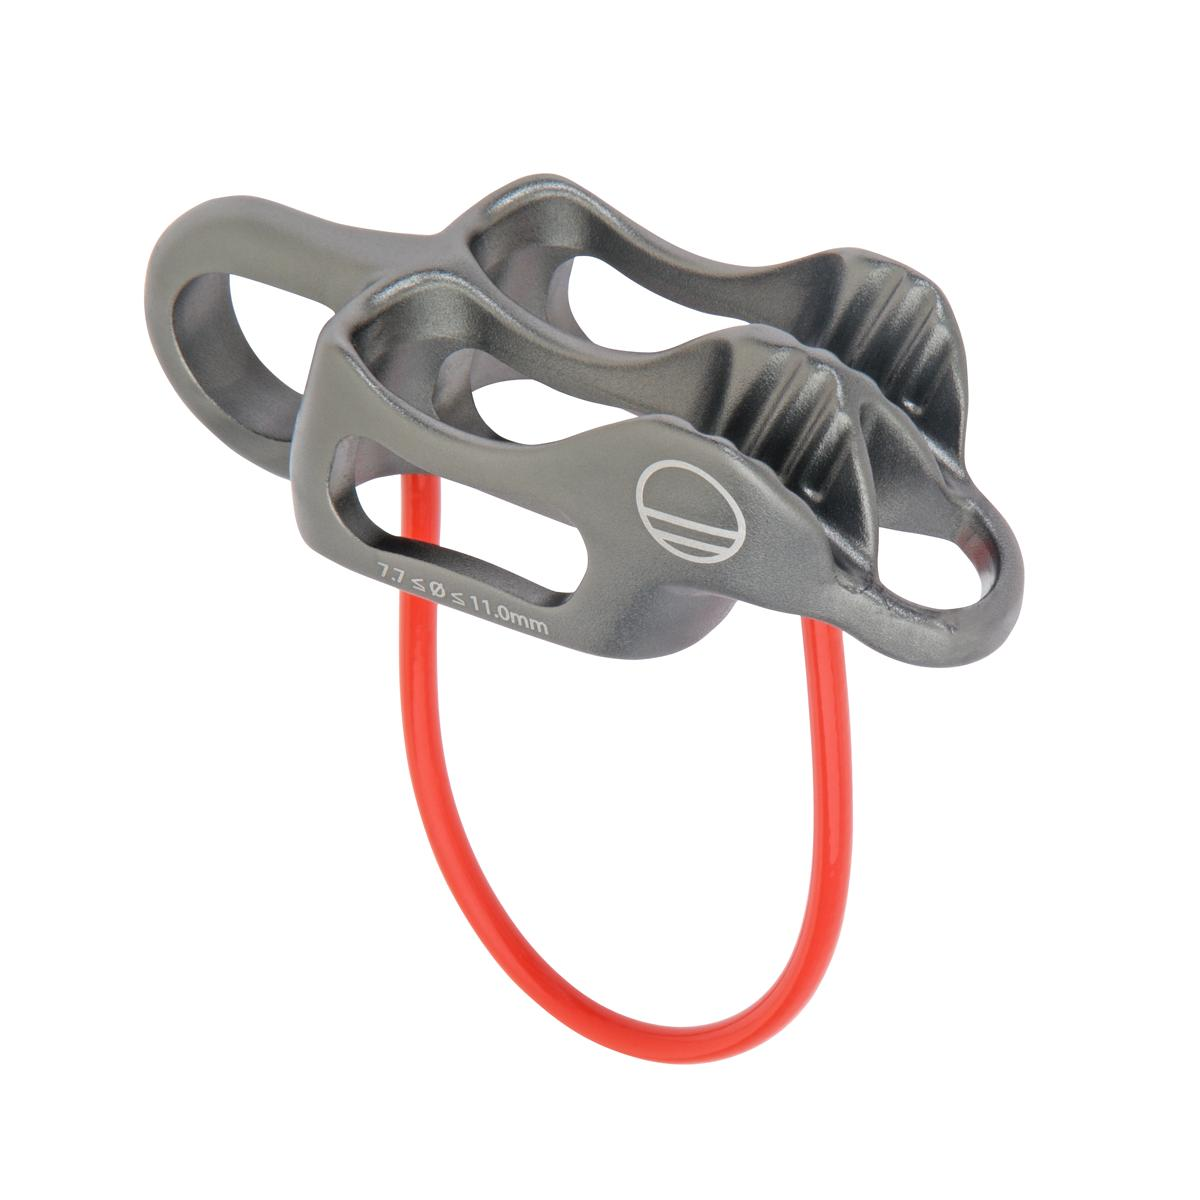 Wild Country Pro Guide Lite Belay-Rappel Device